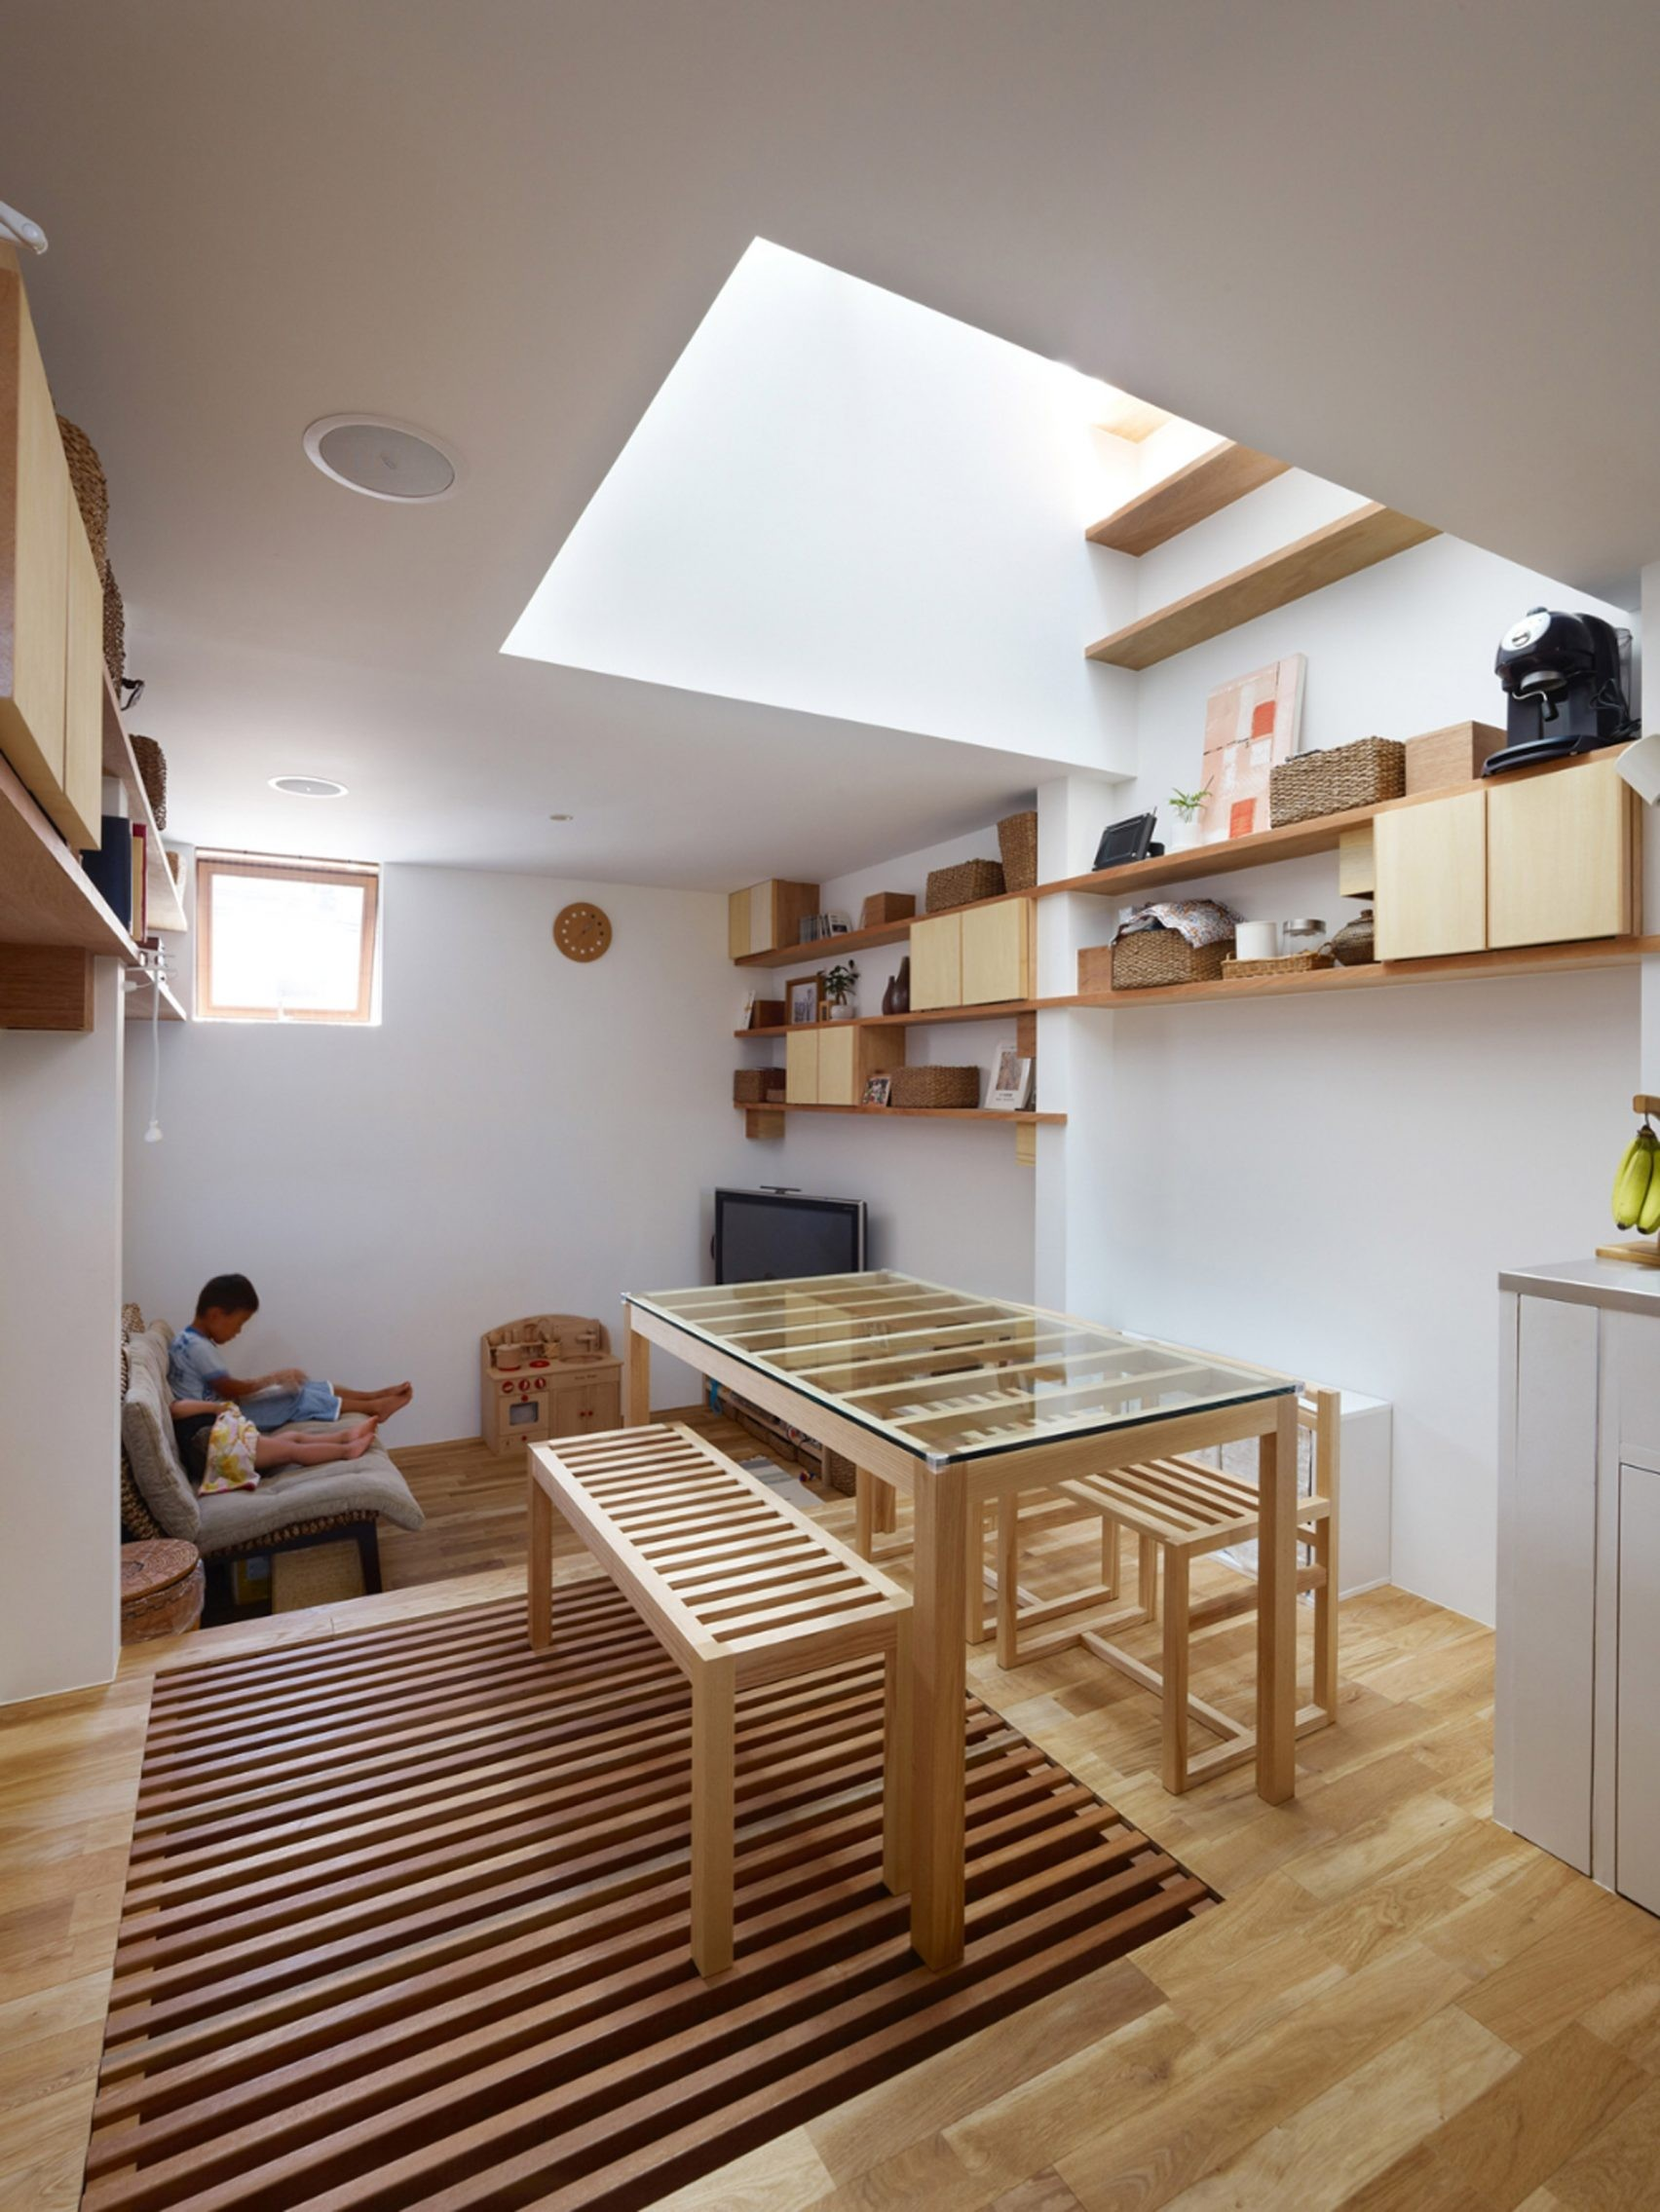 tiny house kobe fujiwaramuro architects japan dezeen 2364 col 0 1704x2271